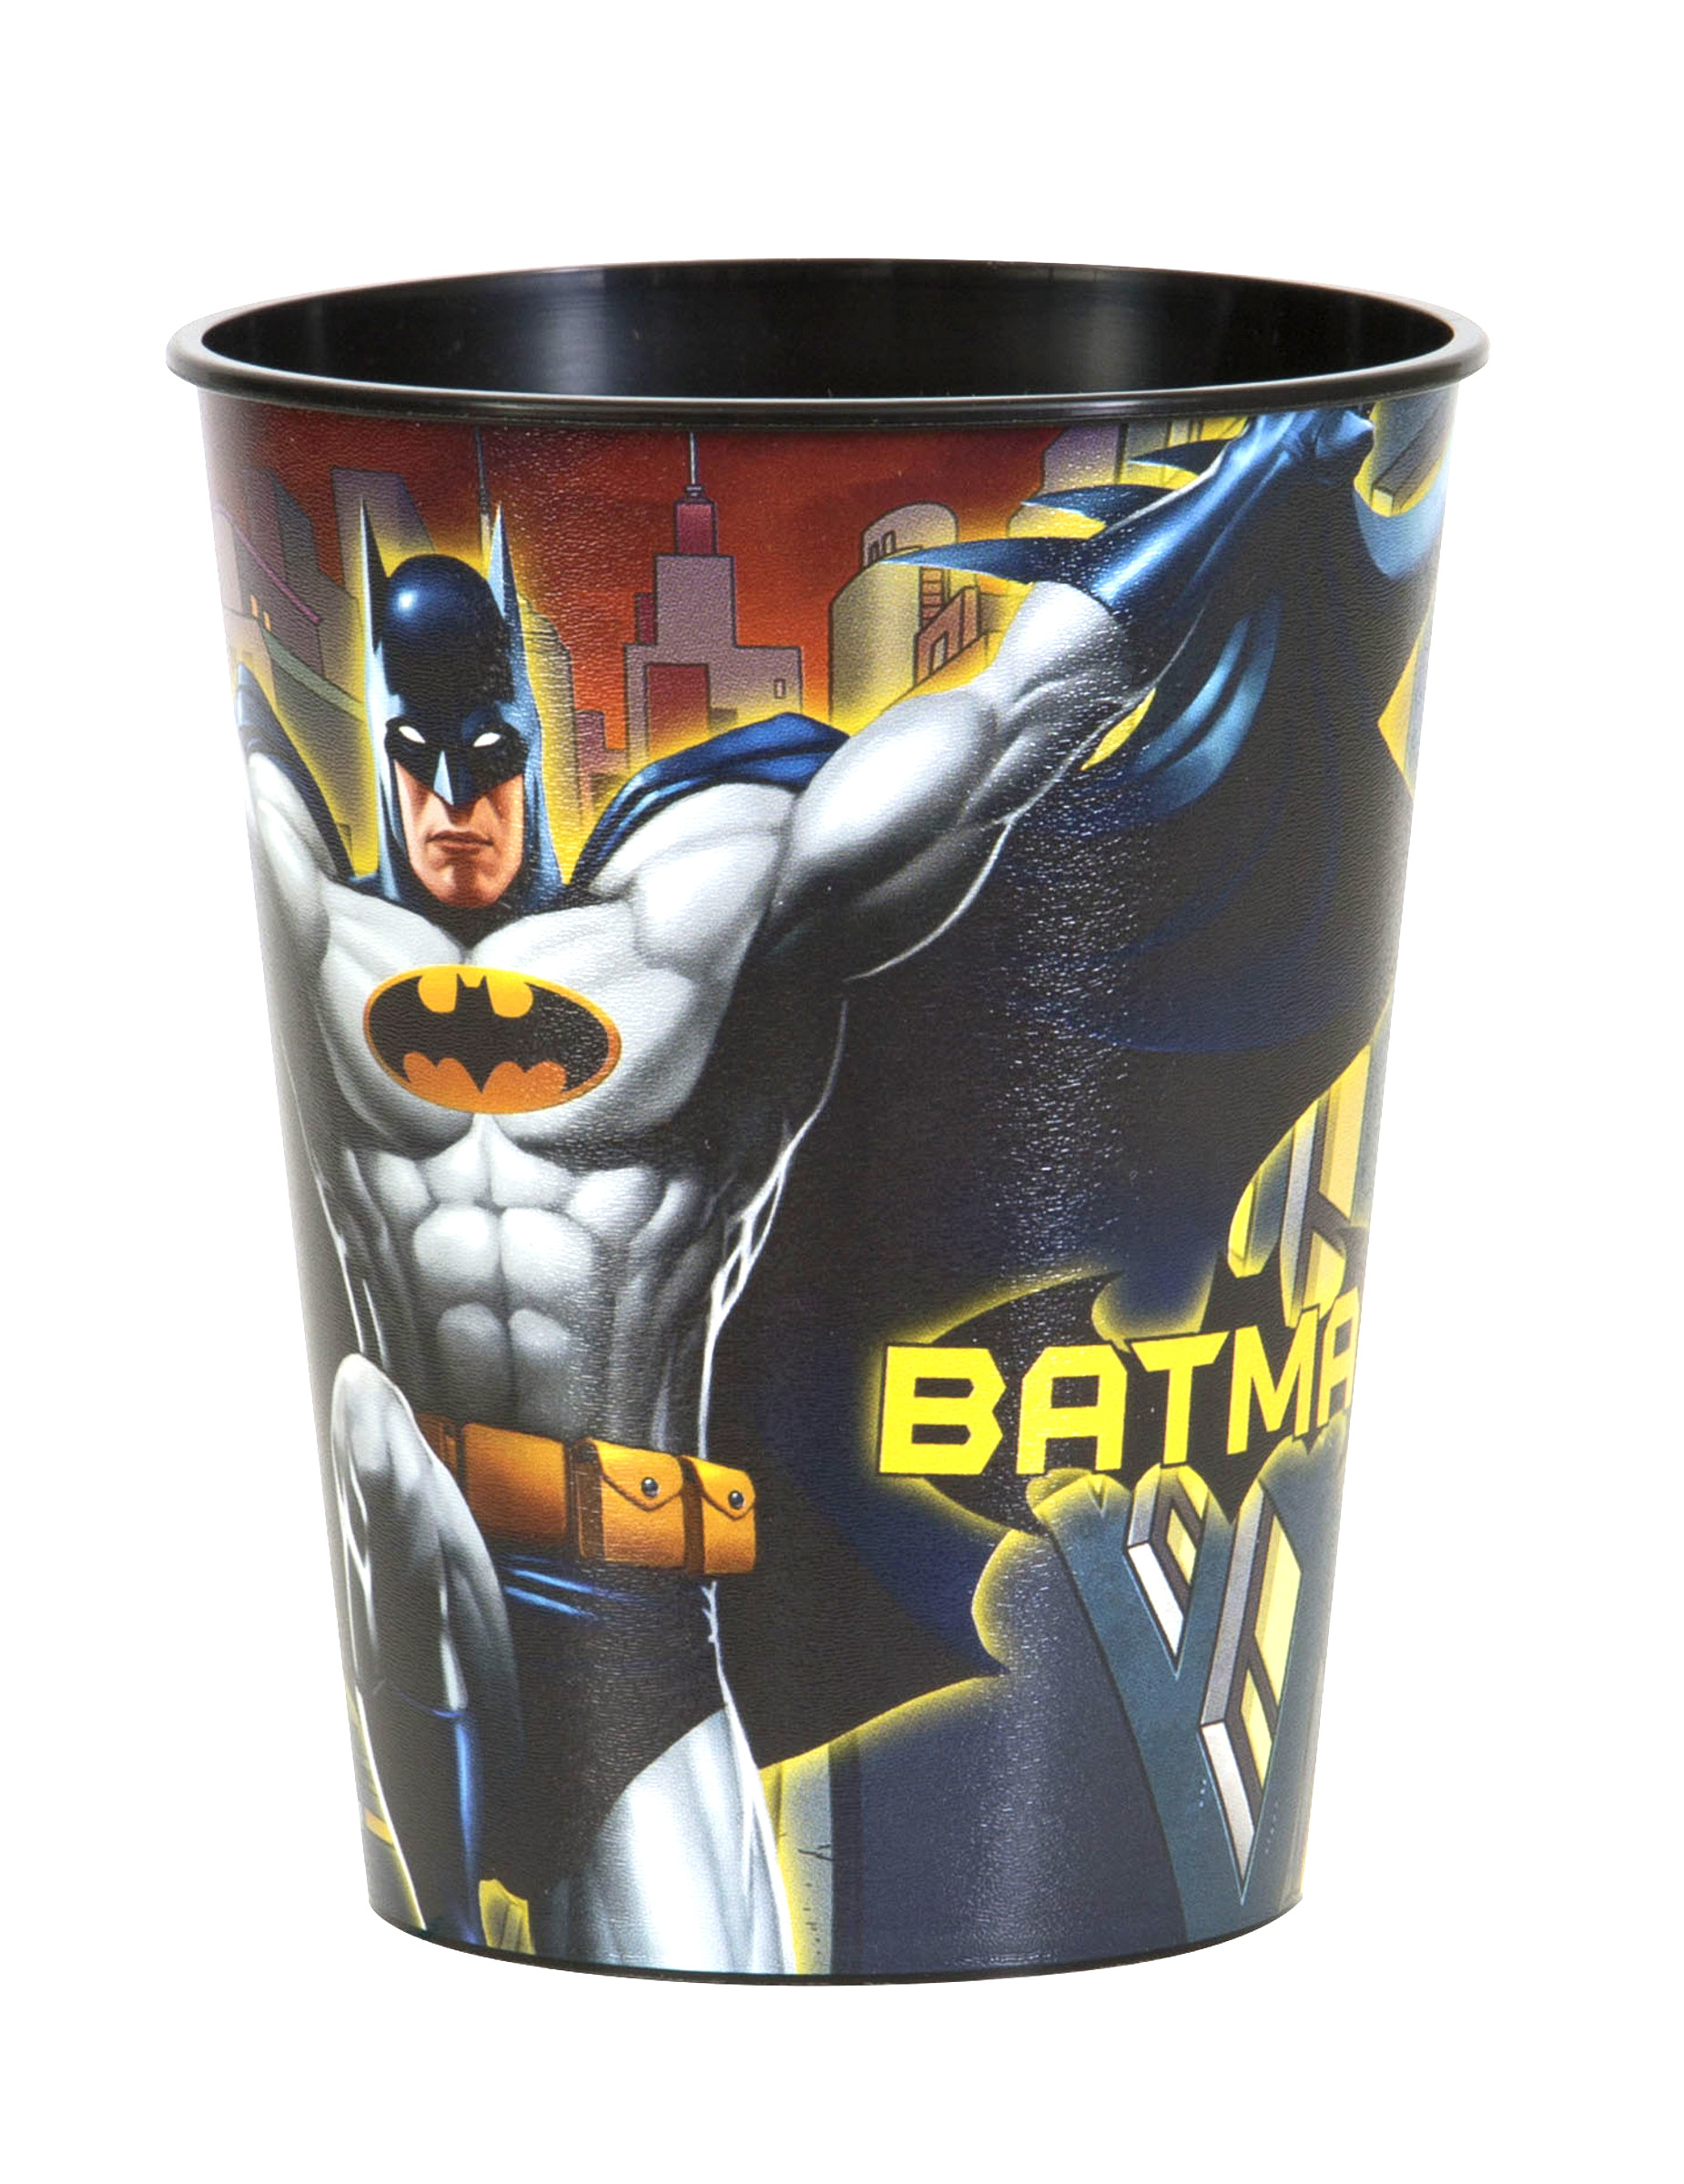 gobelet en plastique batman 50 cl d coration anniversaire et f tes th me sur vegaoo party. Black Bedroom Furniture Sets. Home Design Ideas